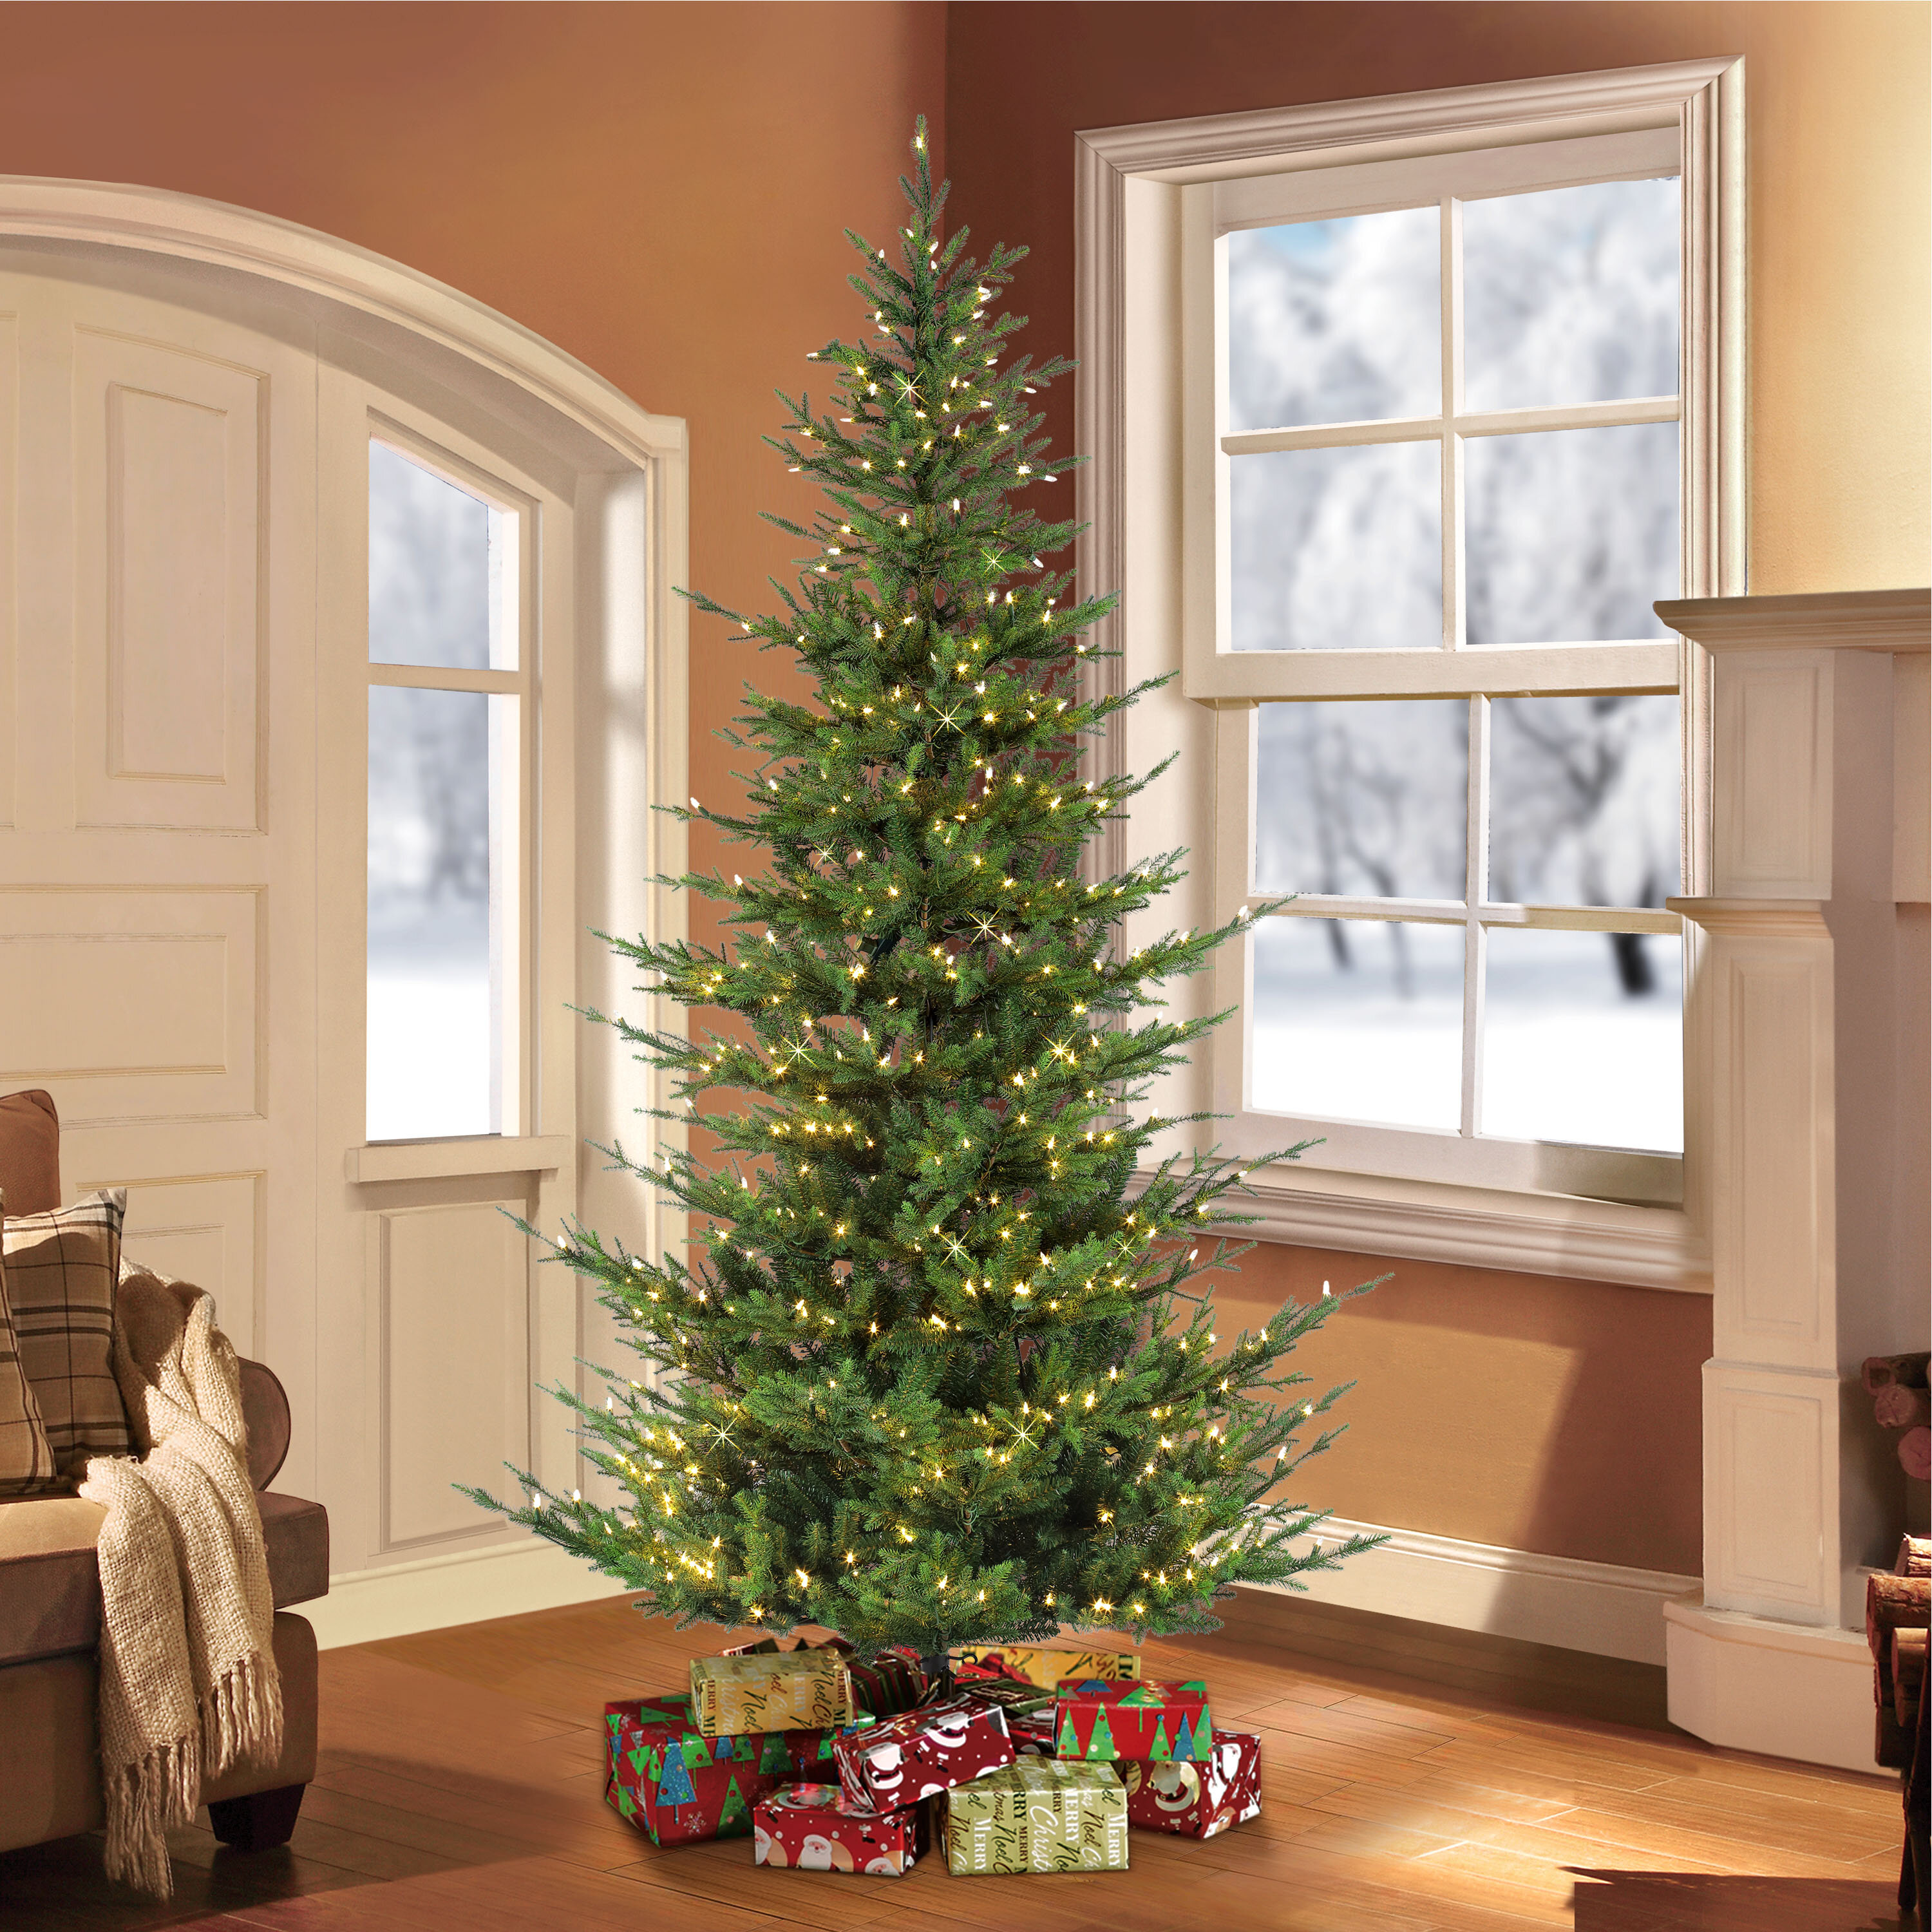 The Holiday Aisle Natural 7 5 Green Fir Artificial Christmas Tree With 700 Clear And White Lights Reviews Wayfair